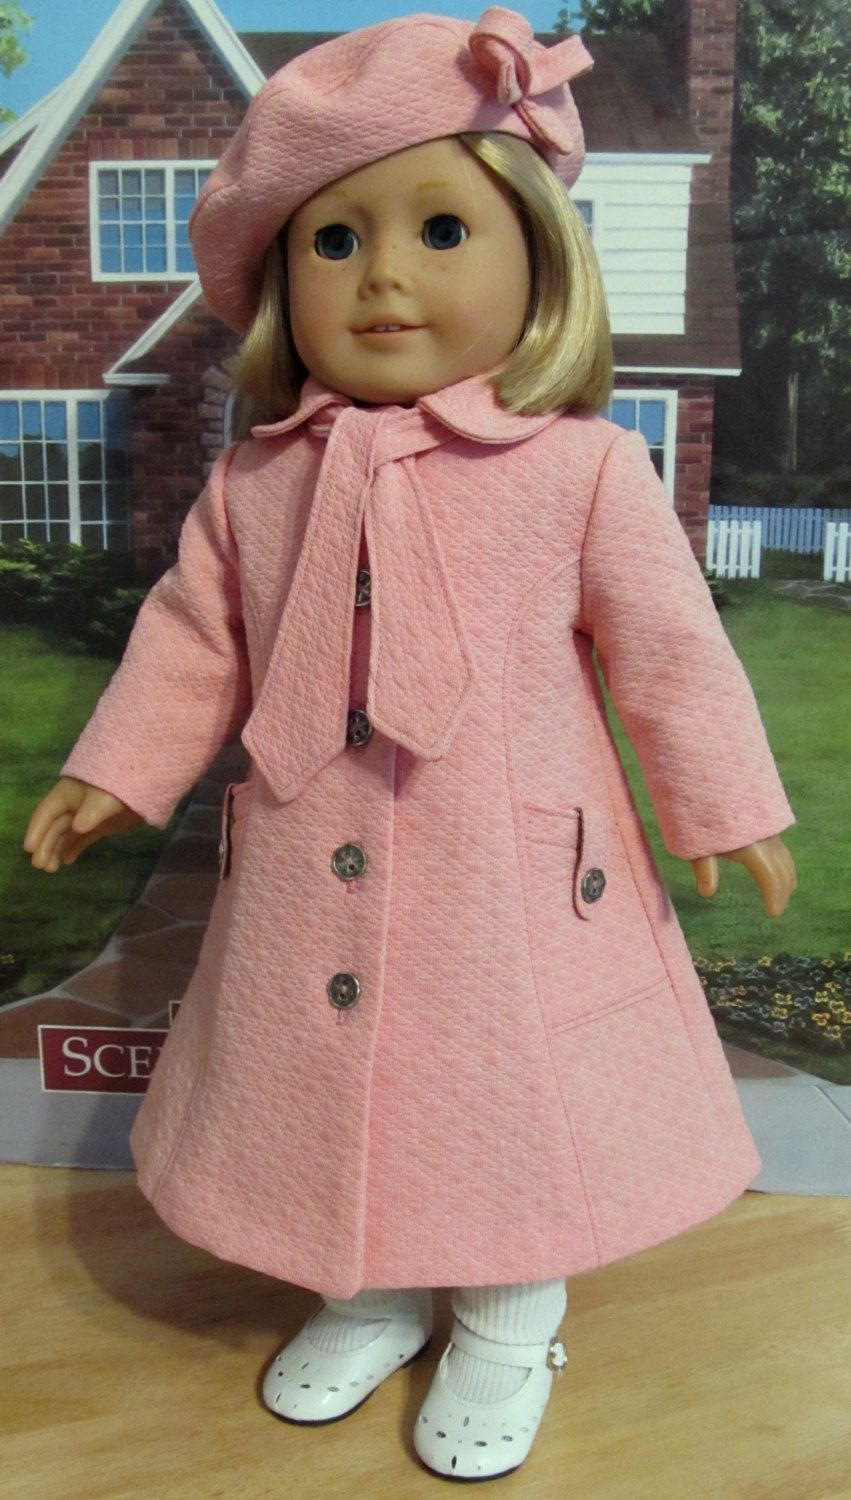 Coral Pink Classic Coat and Beret - Clothes fit American Girl Doll, An Original KeepersDollyDuds Design